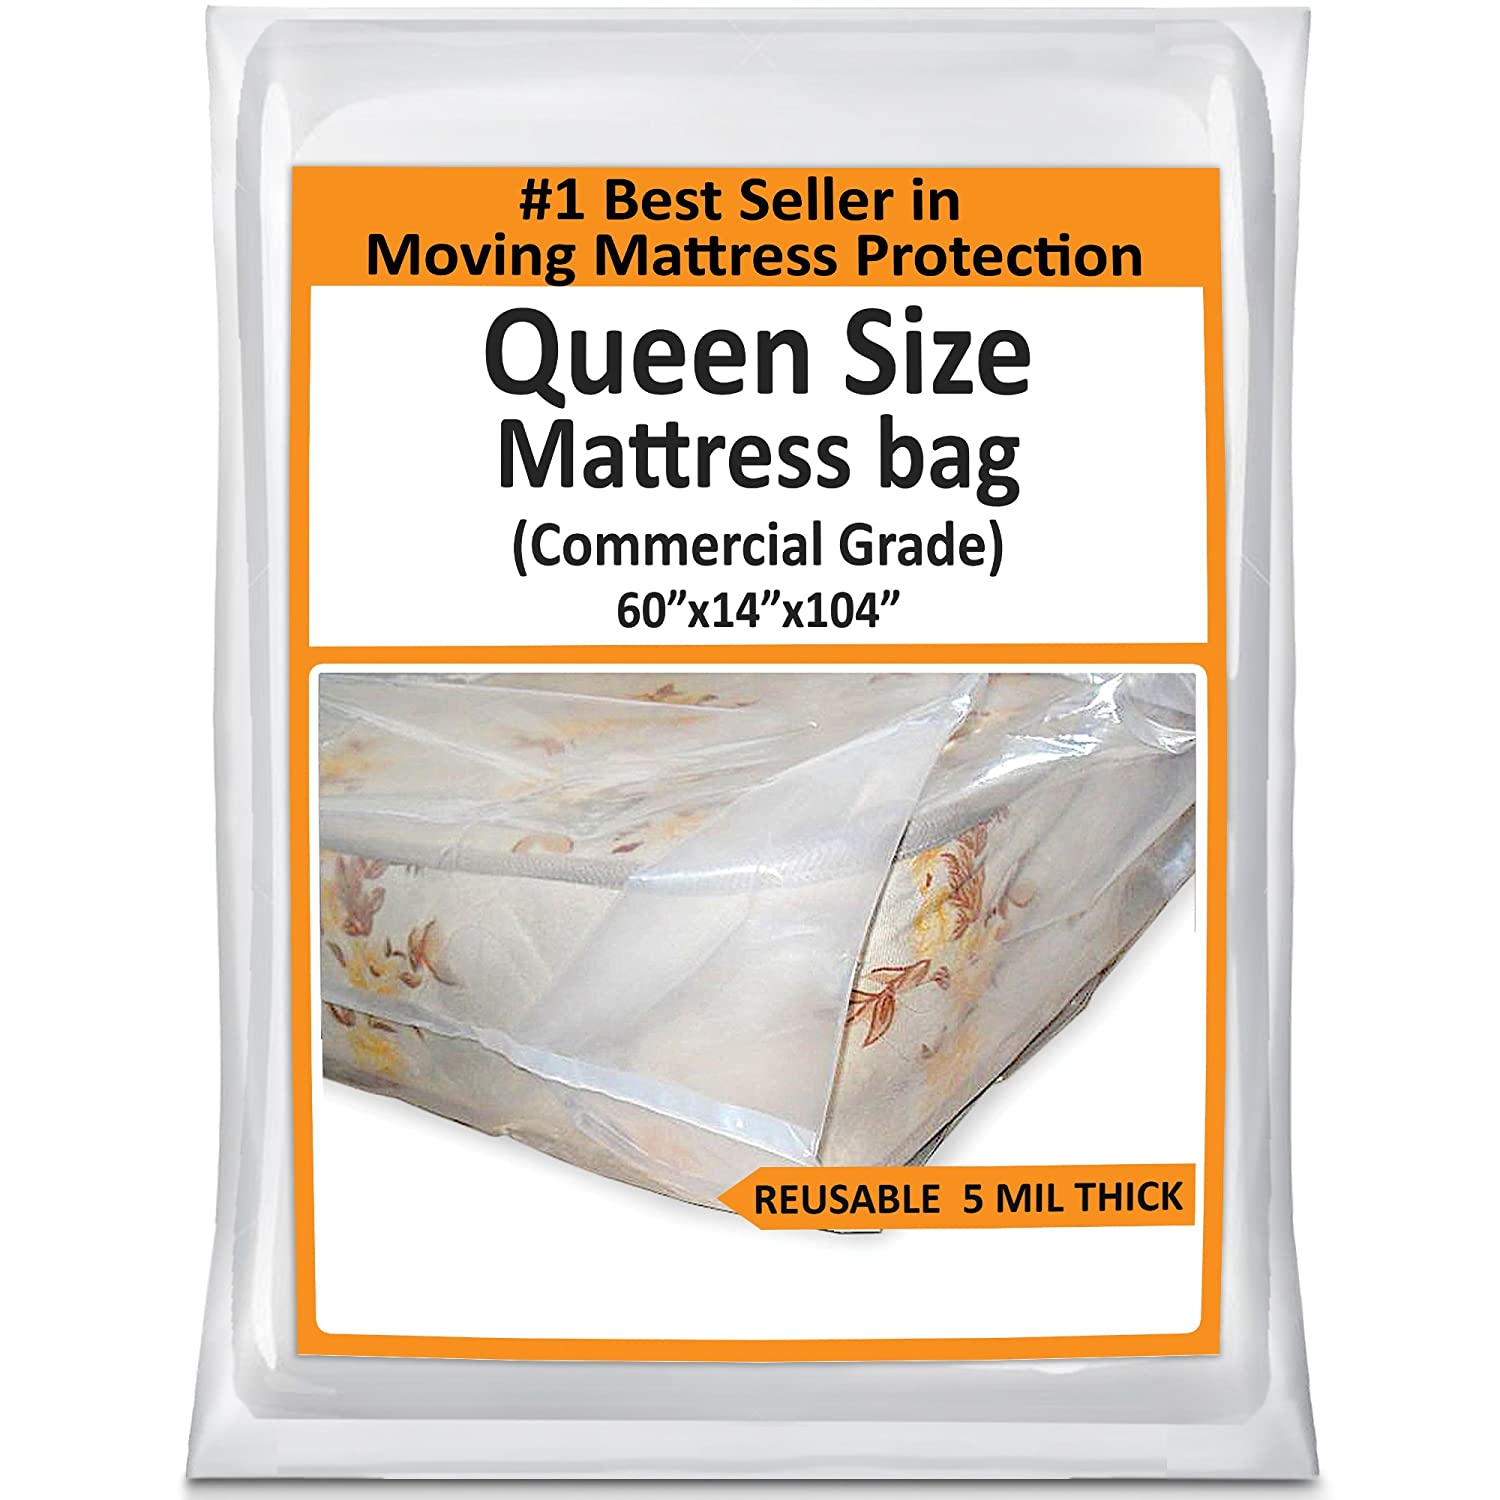 Queen Mattress Bag For Moving Heavy Duty Plastic Cover